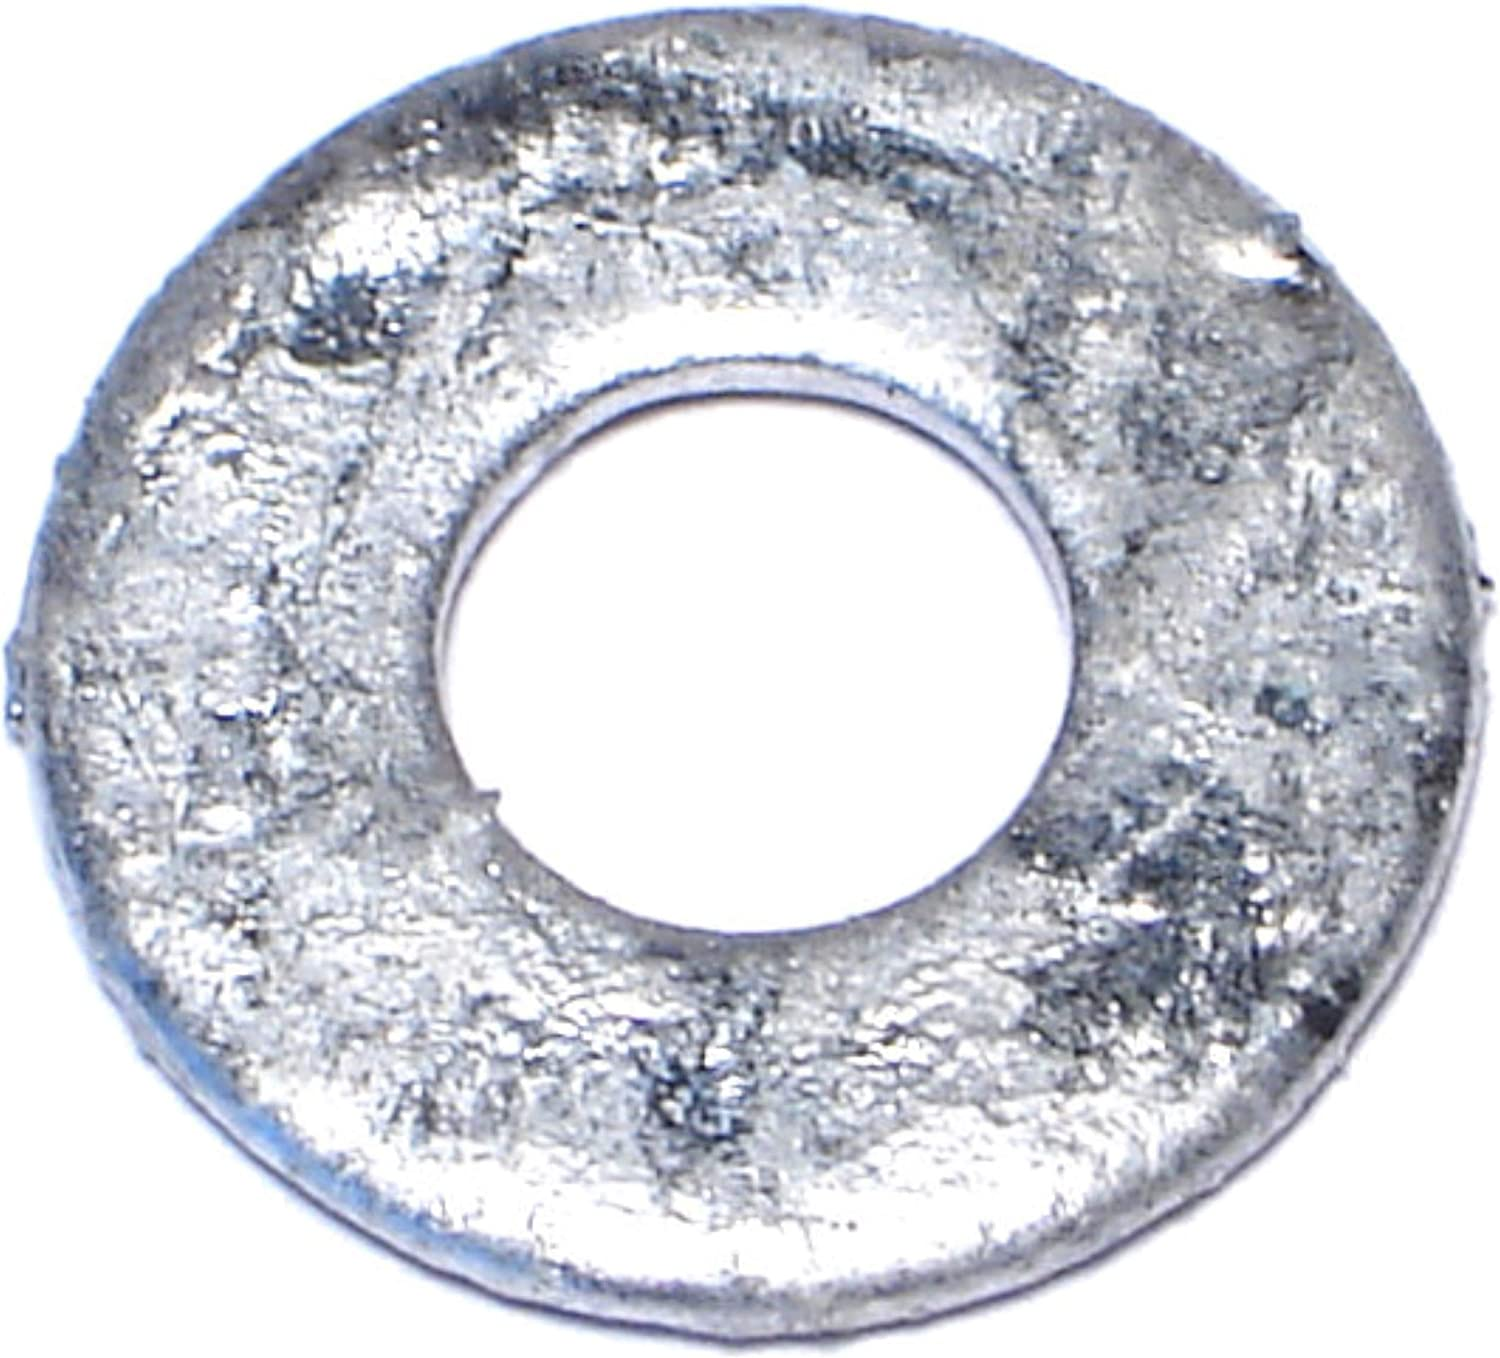 1//2 Piece-50 Hard-to-Find Fastener 014973152147 USS Flat Washers